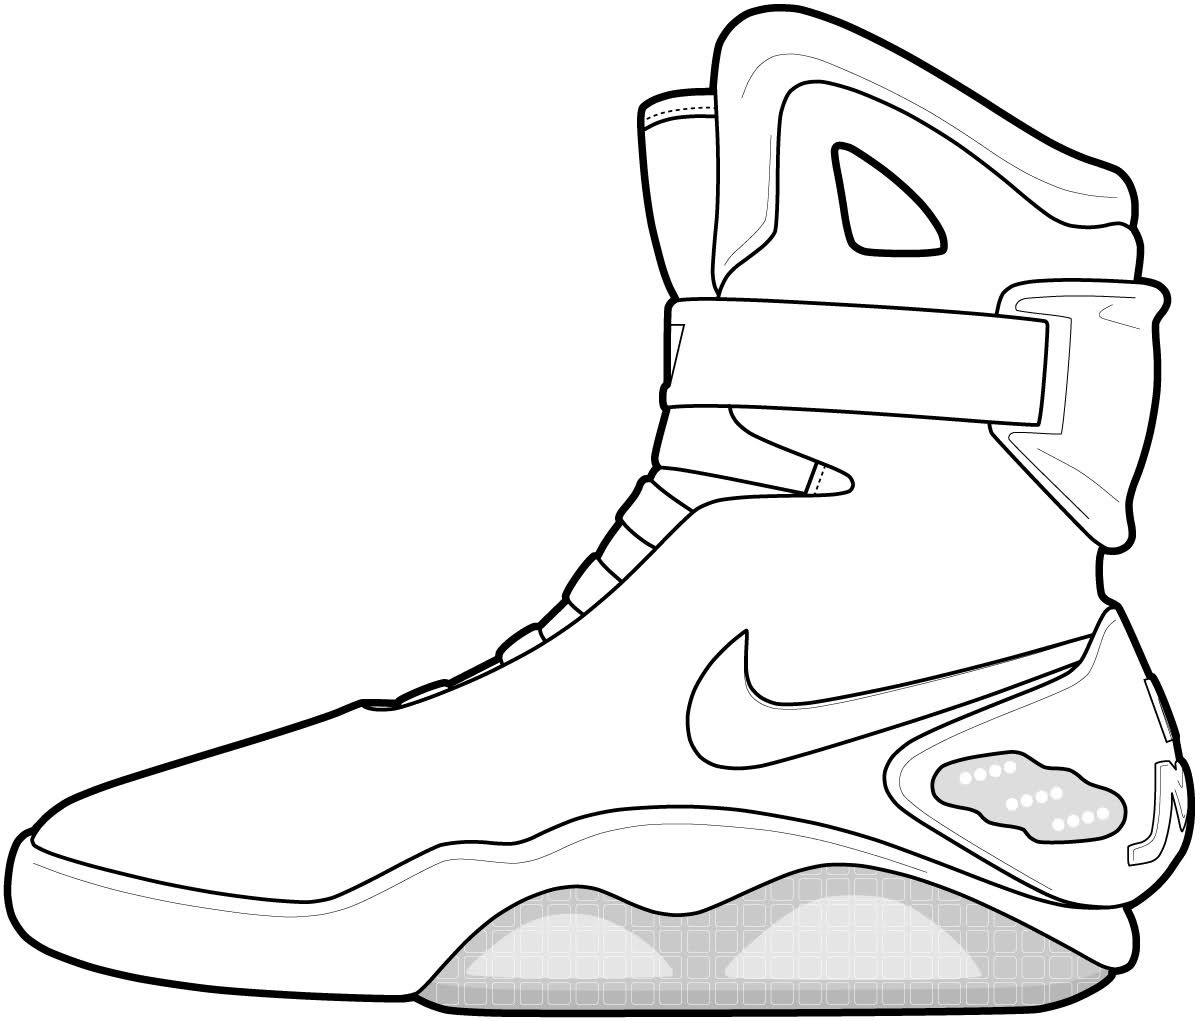 jordan coloring pages for kids - photo#2